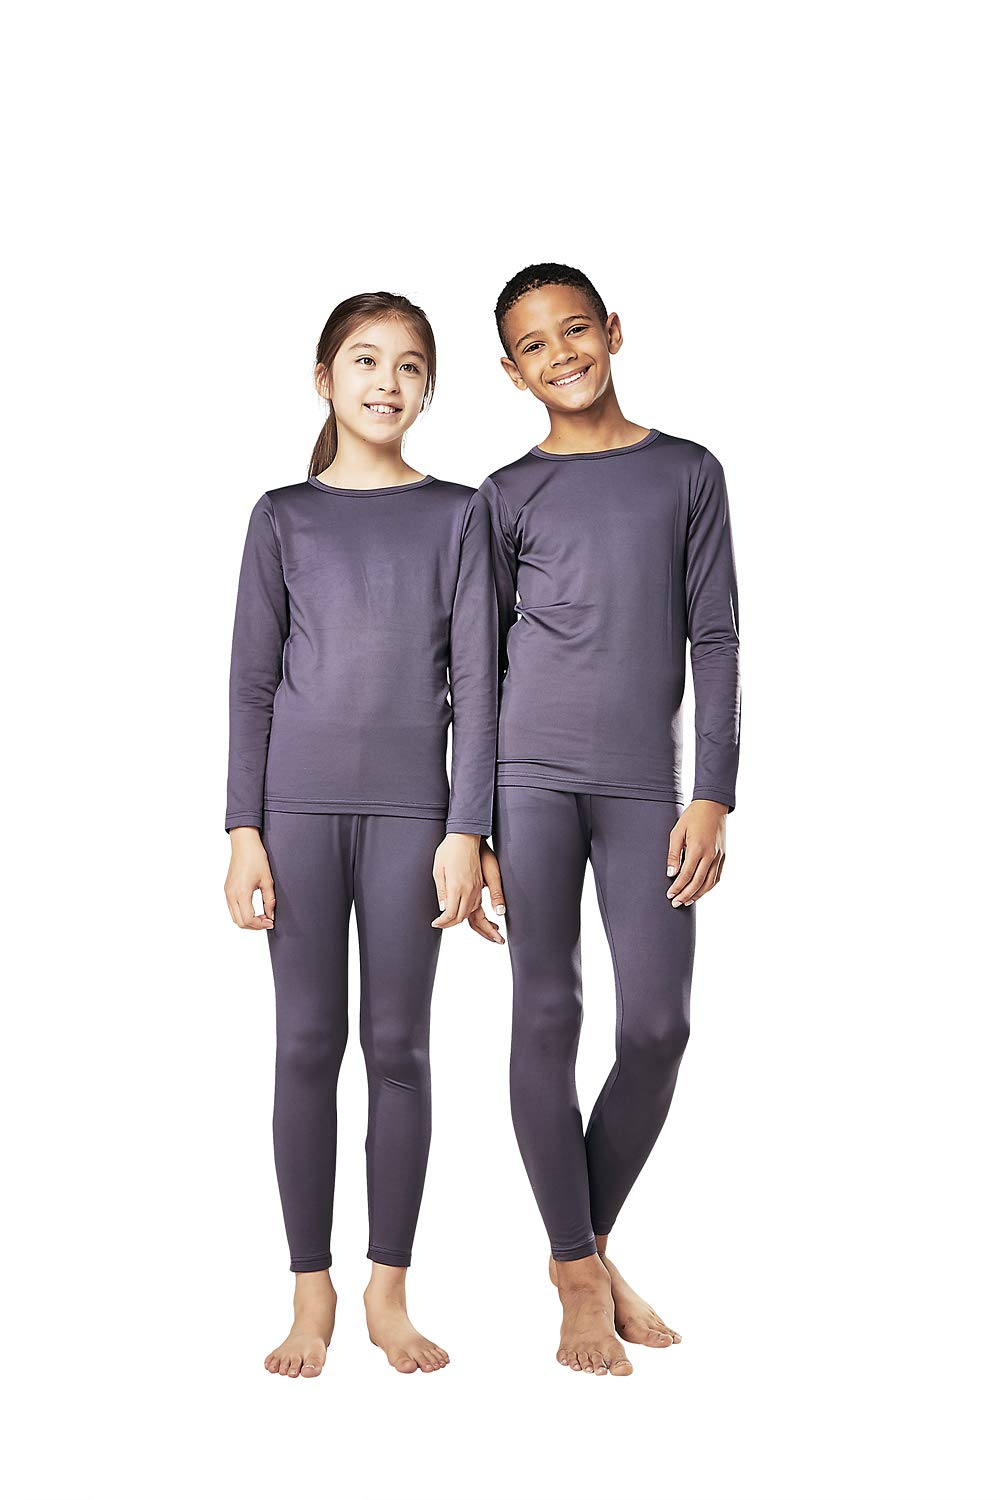 DEVOPS Boys & Girls Thermal Heat-Chain Microfiber Fleece Underwear Baselayer Top & Bottom (Long Johns) Set (Large, Charcoal) by DEVOPS